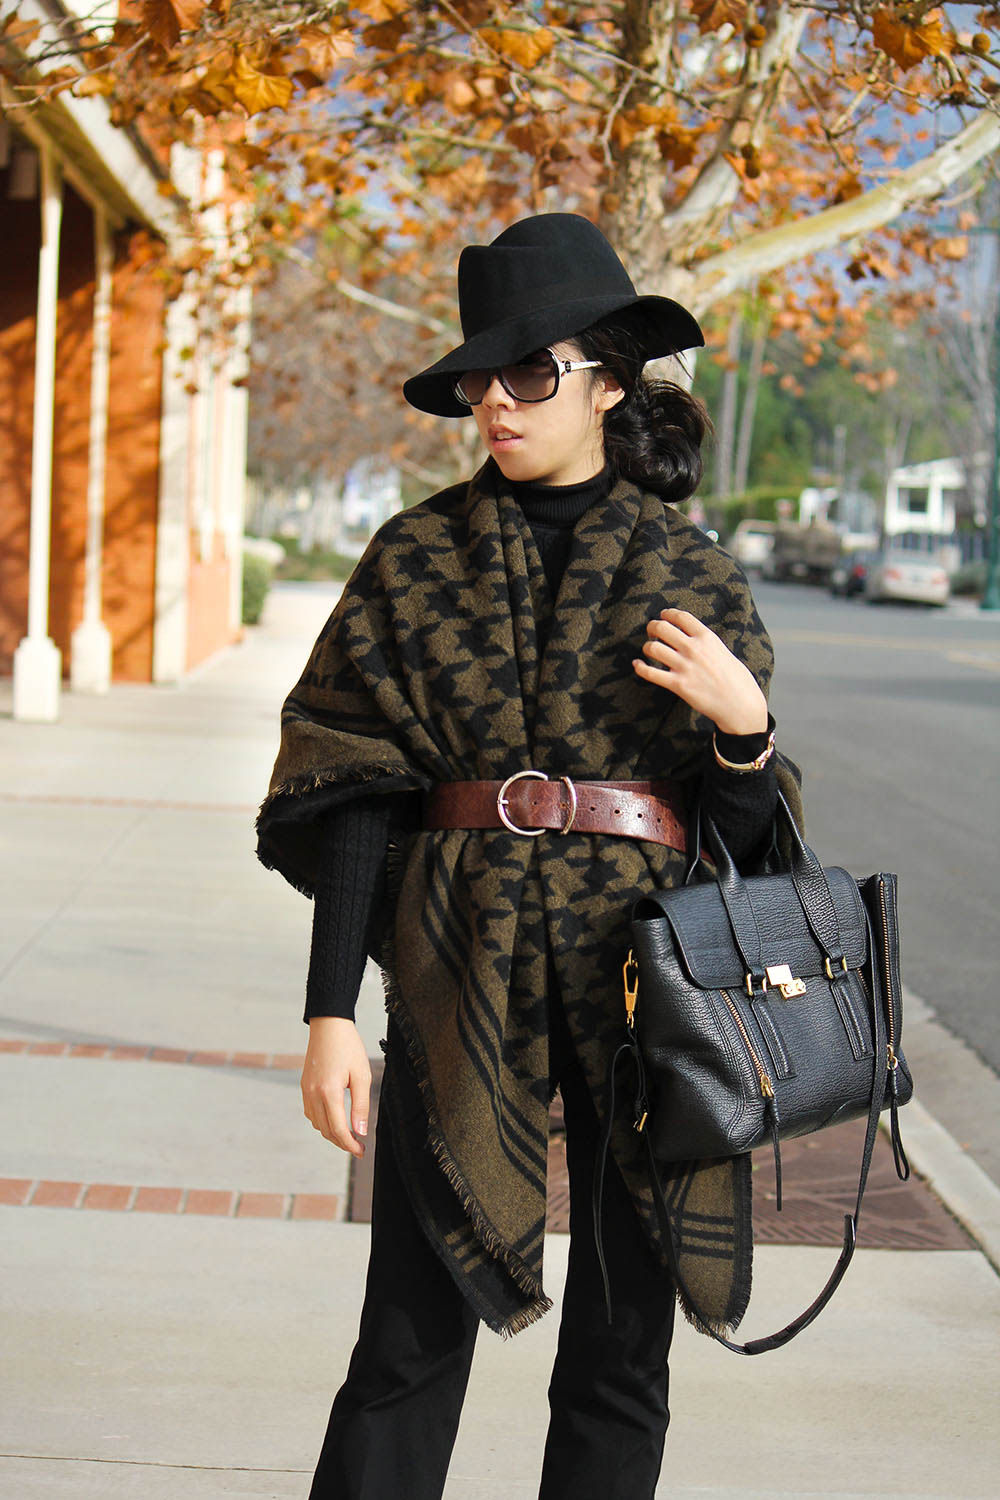 Adrienne Nguyen_Invictus_Houndstooth Oversized Scarf with Leather Belt and Fedora_Winter Layers_Flare Pants_How to wear a black turtleneck